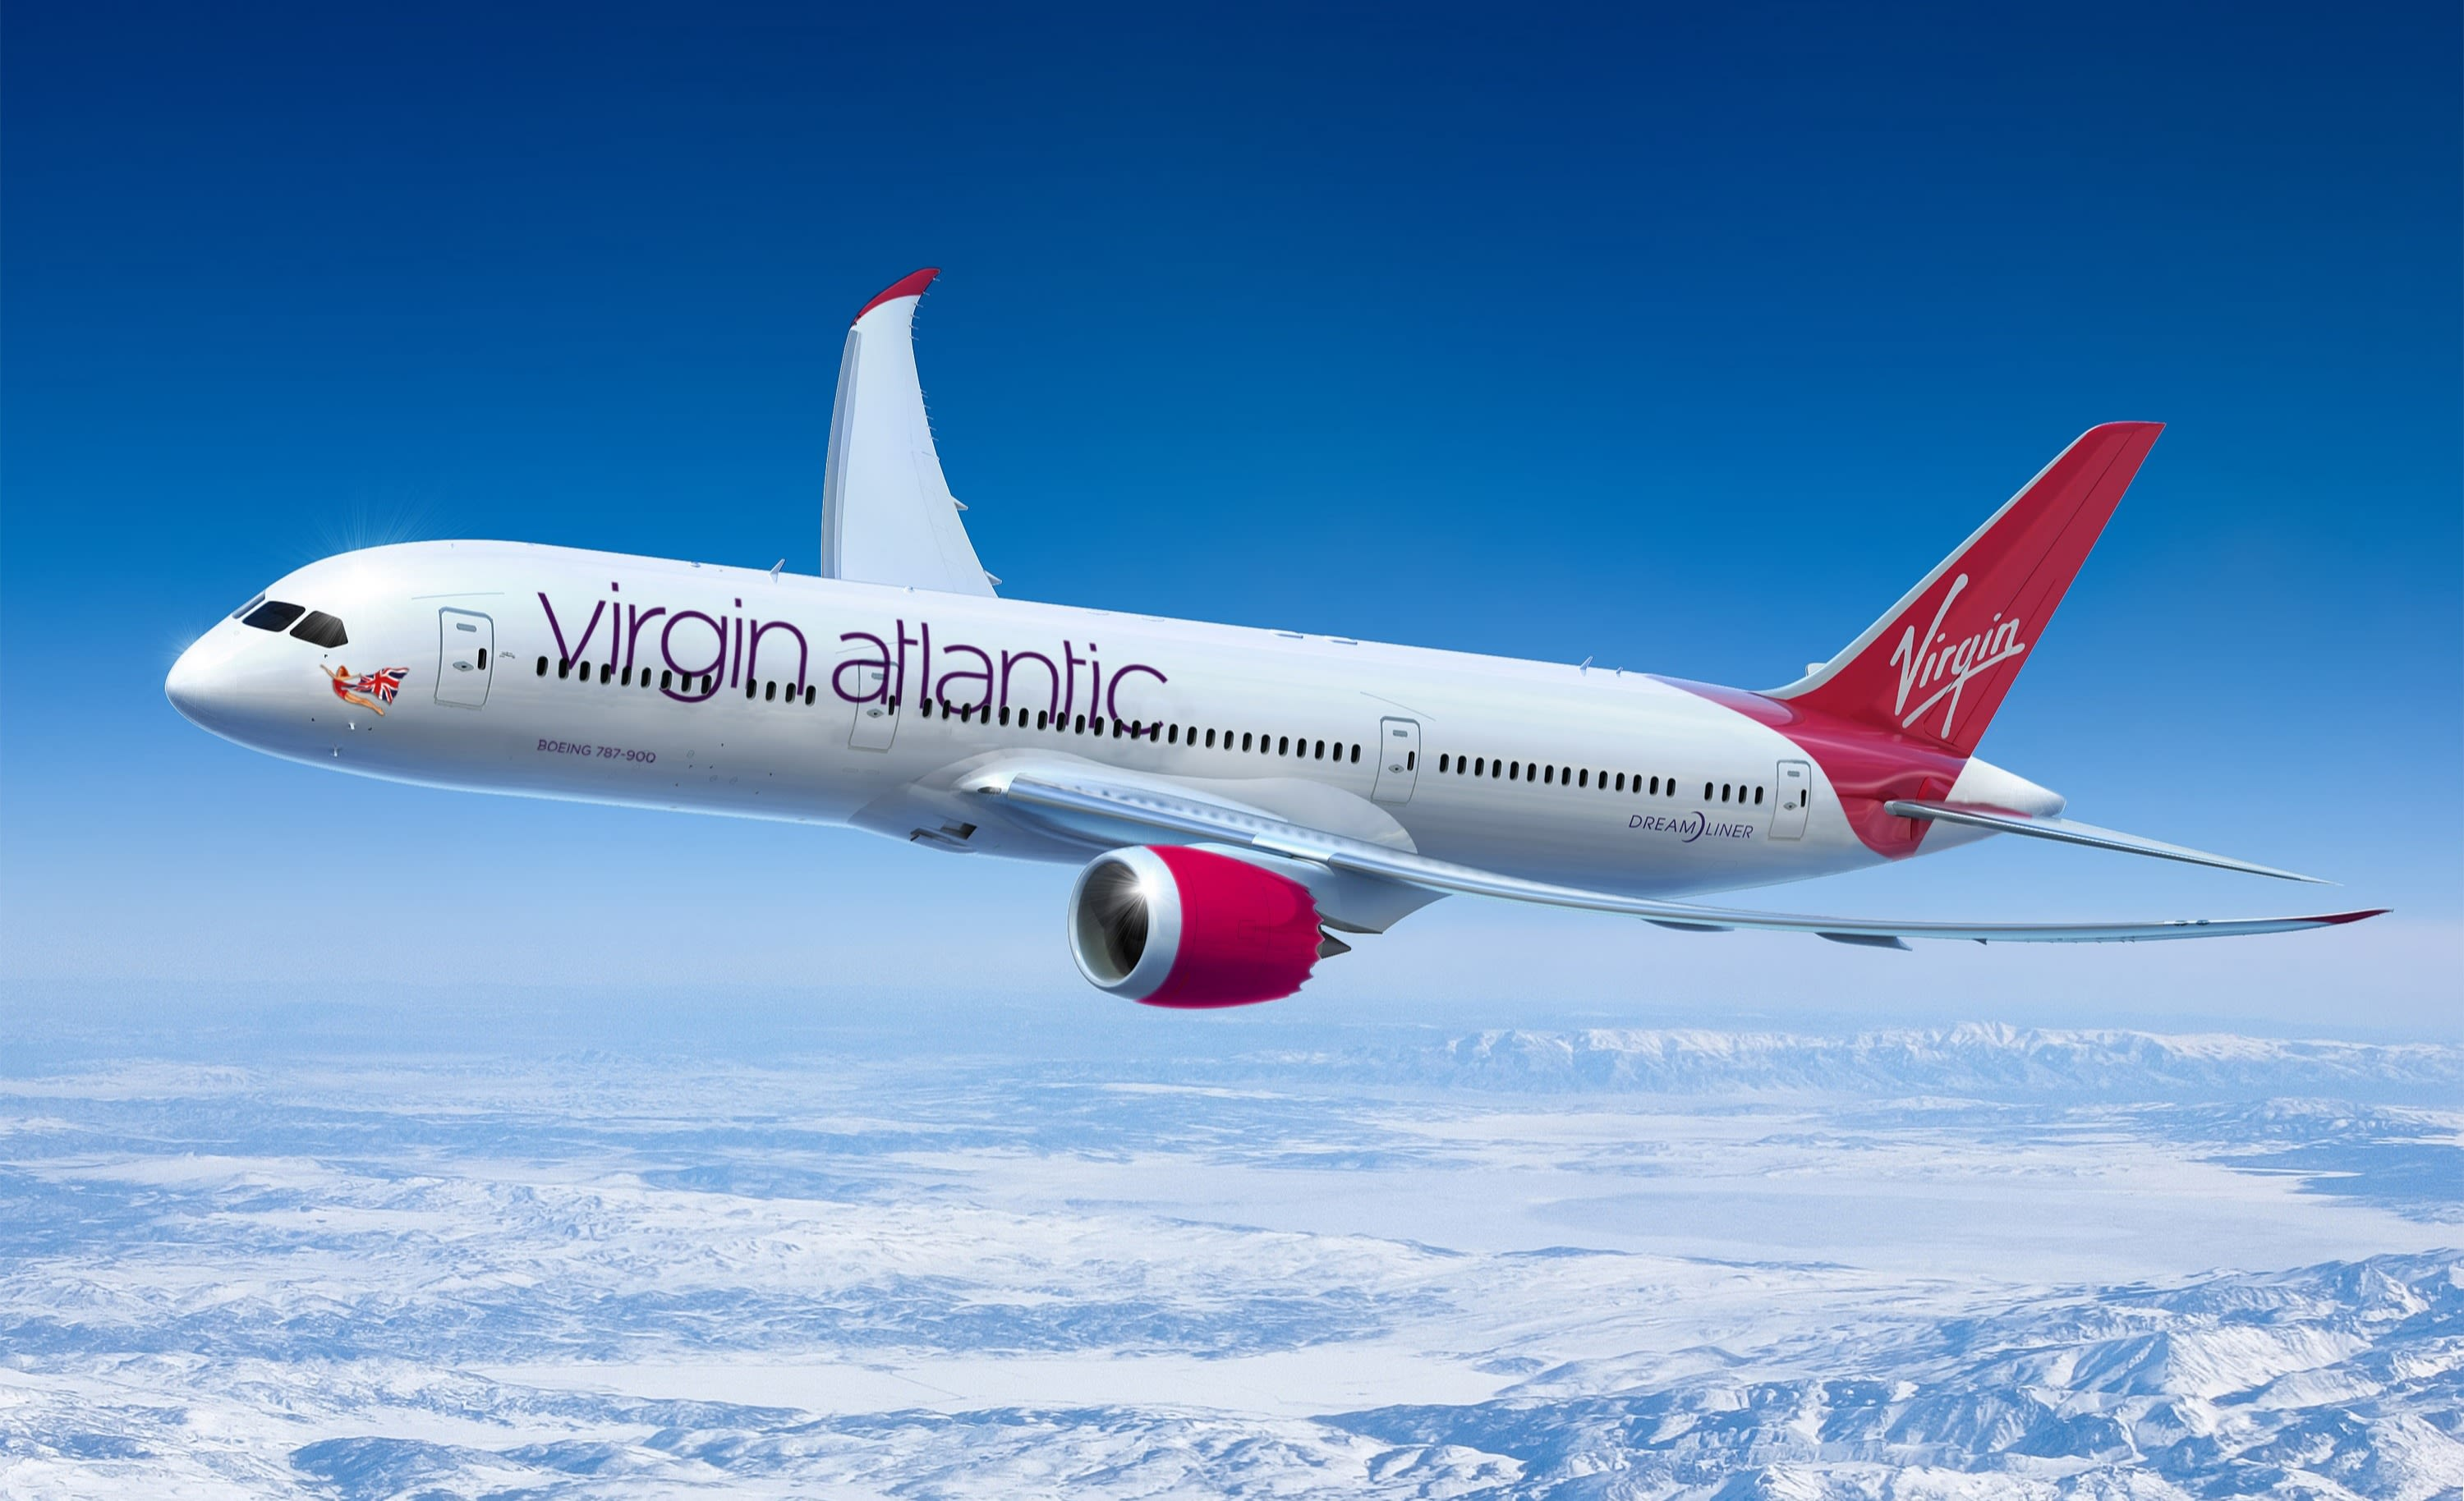 Virgin Atlantic Boeing 787-9 Dreamliner